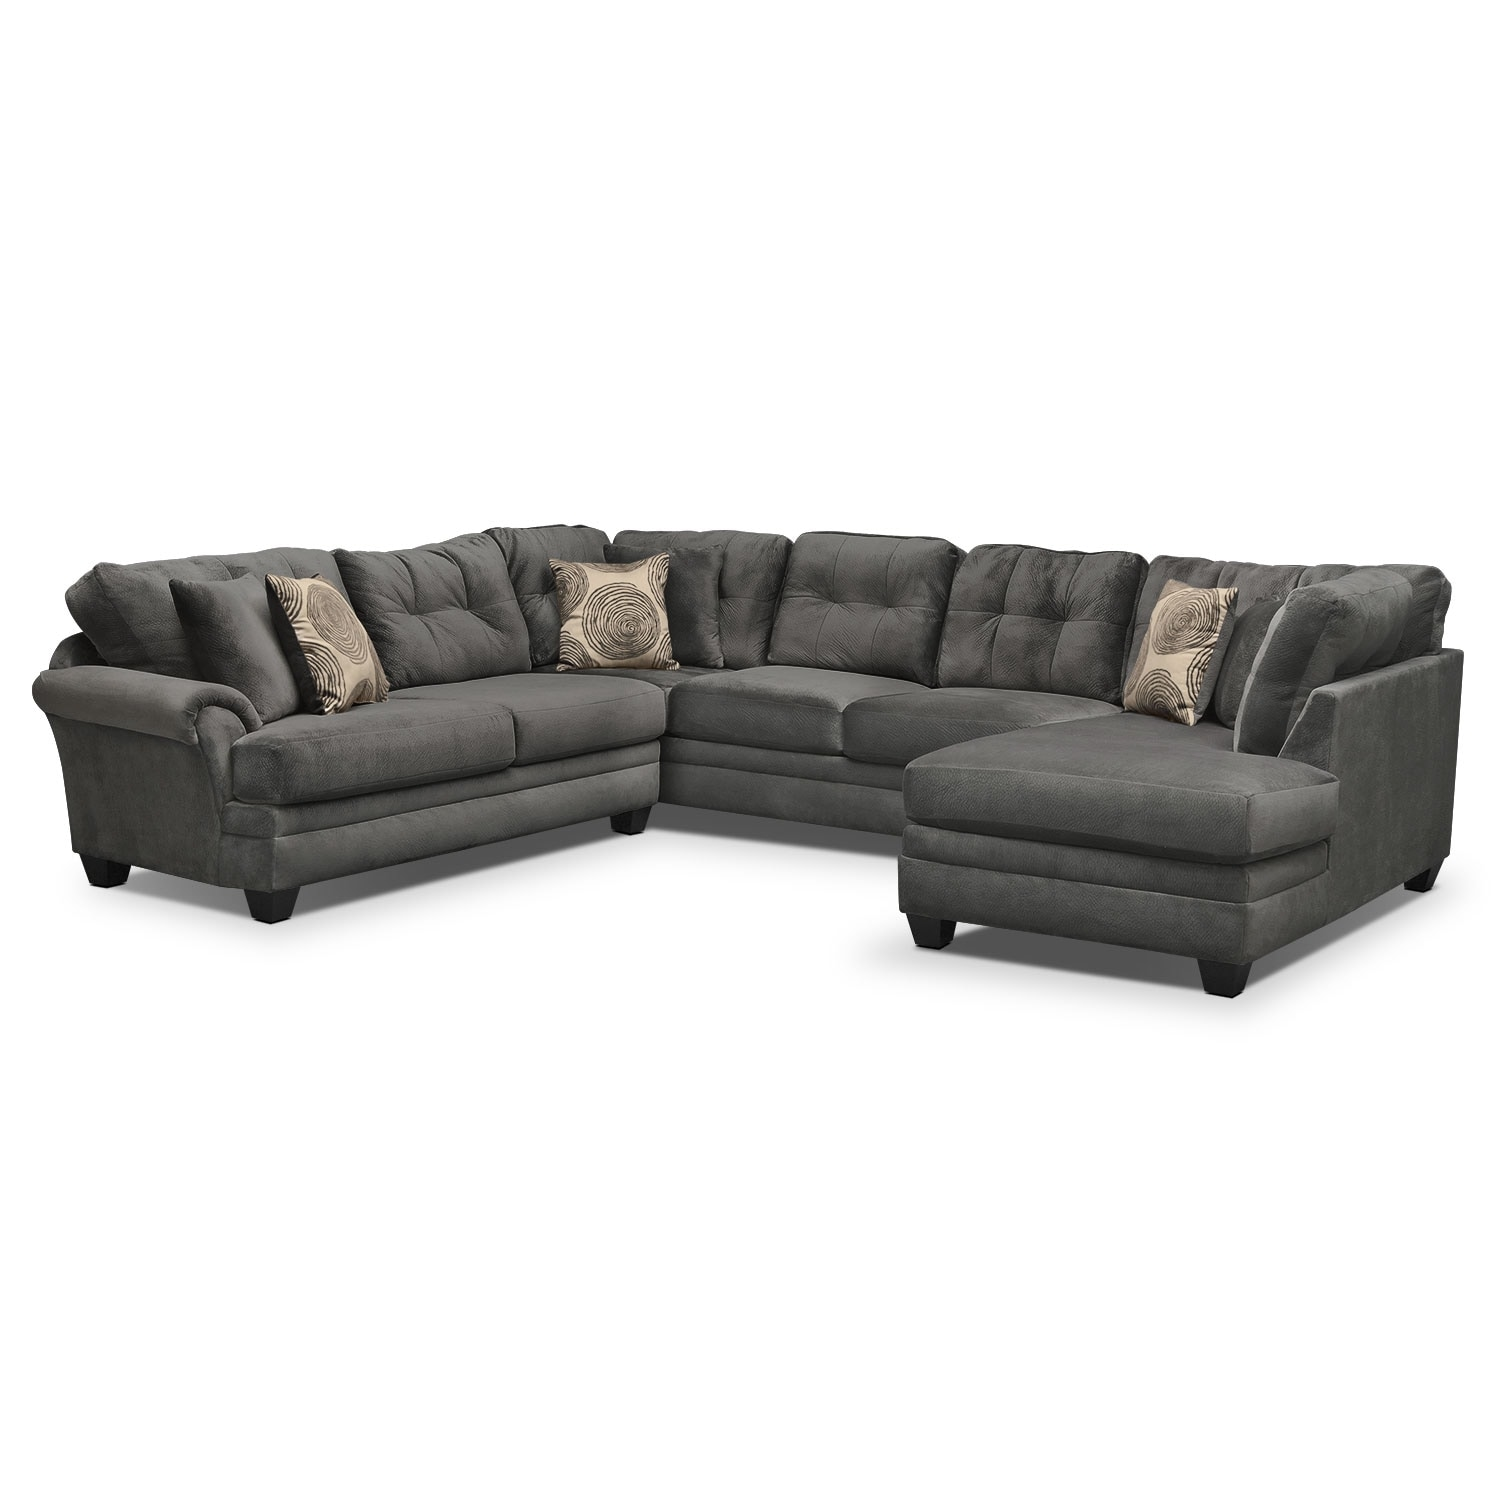 Cordelle 3 Piece Sectional With Right Facing Chaise And